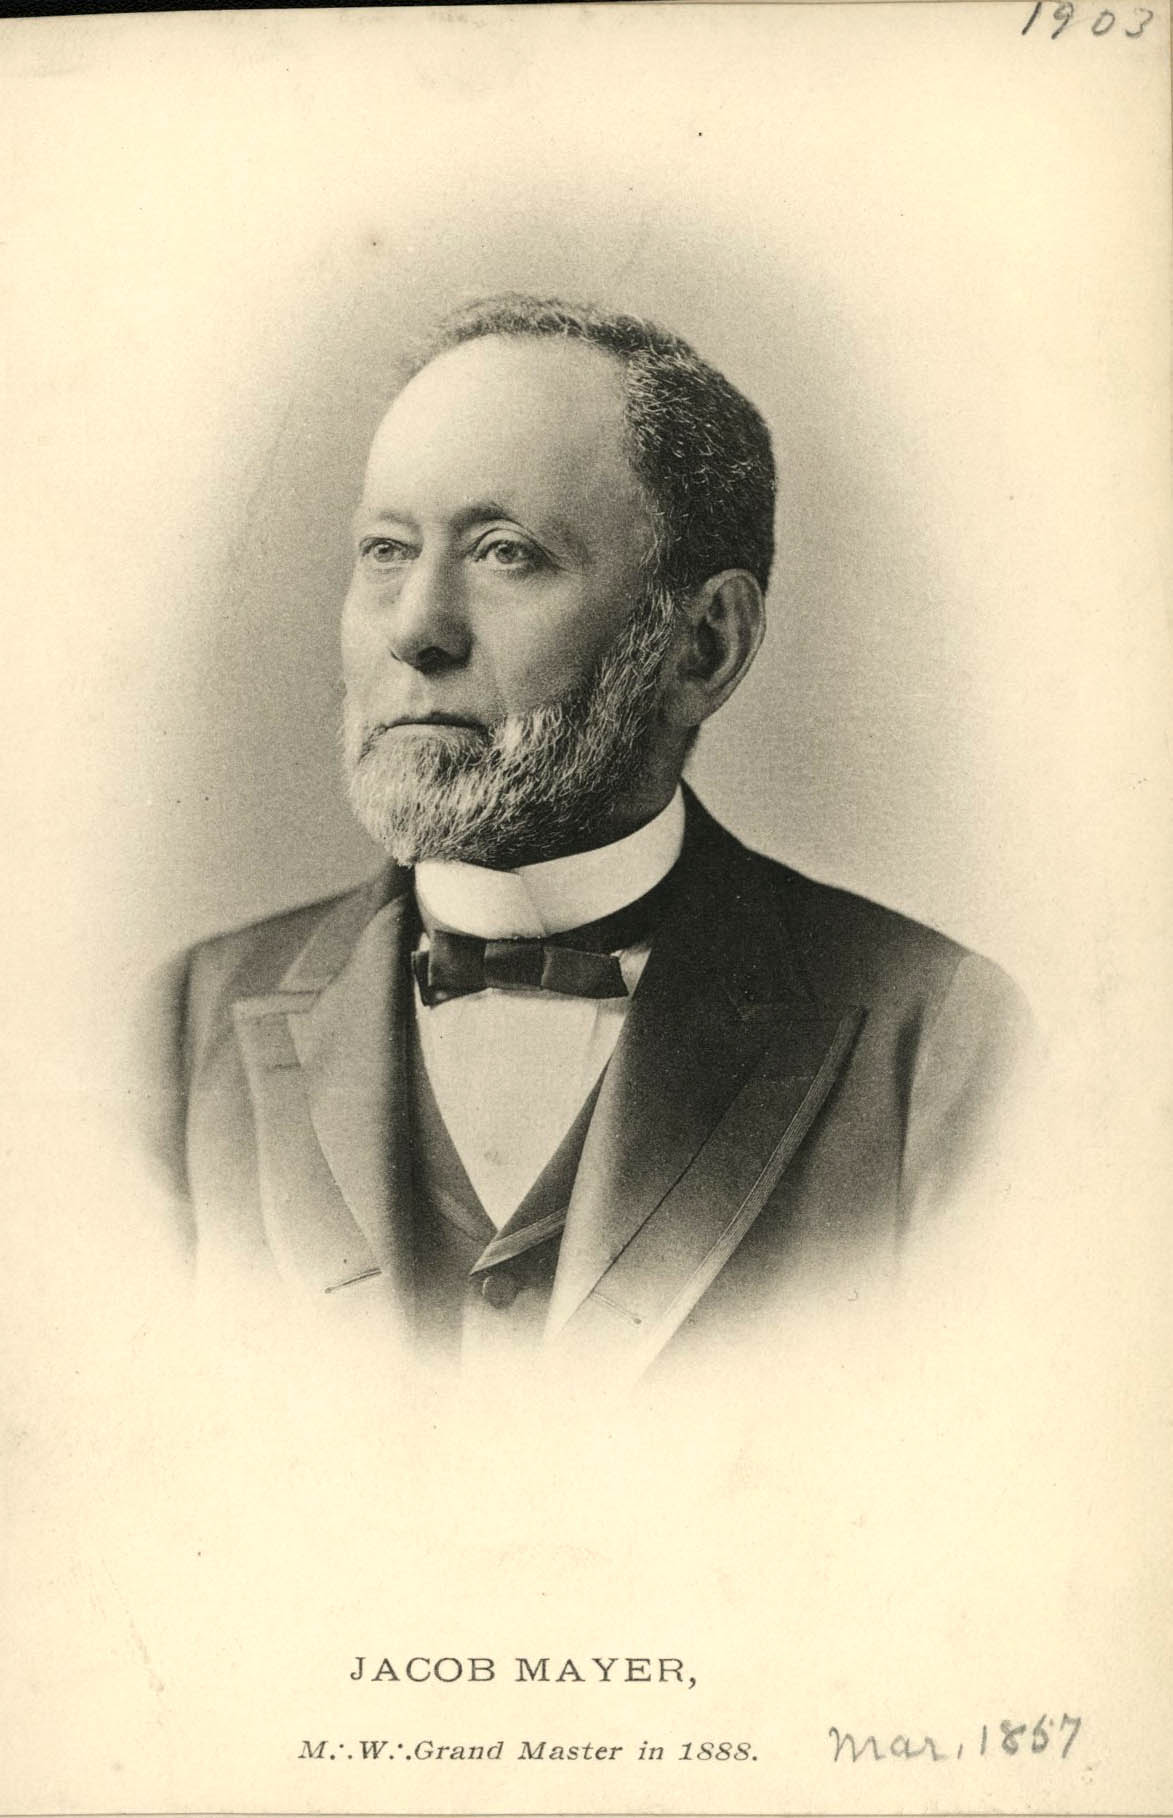 Jacob Mayer, co-founder of Fleischner, Mayer, & Co.